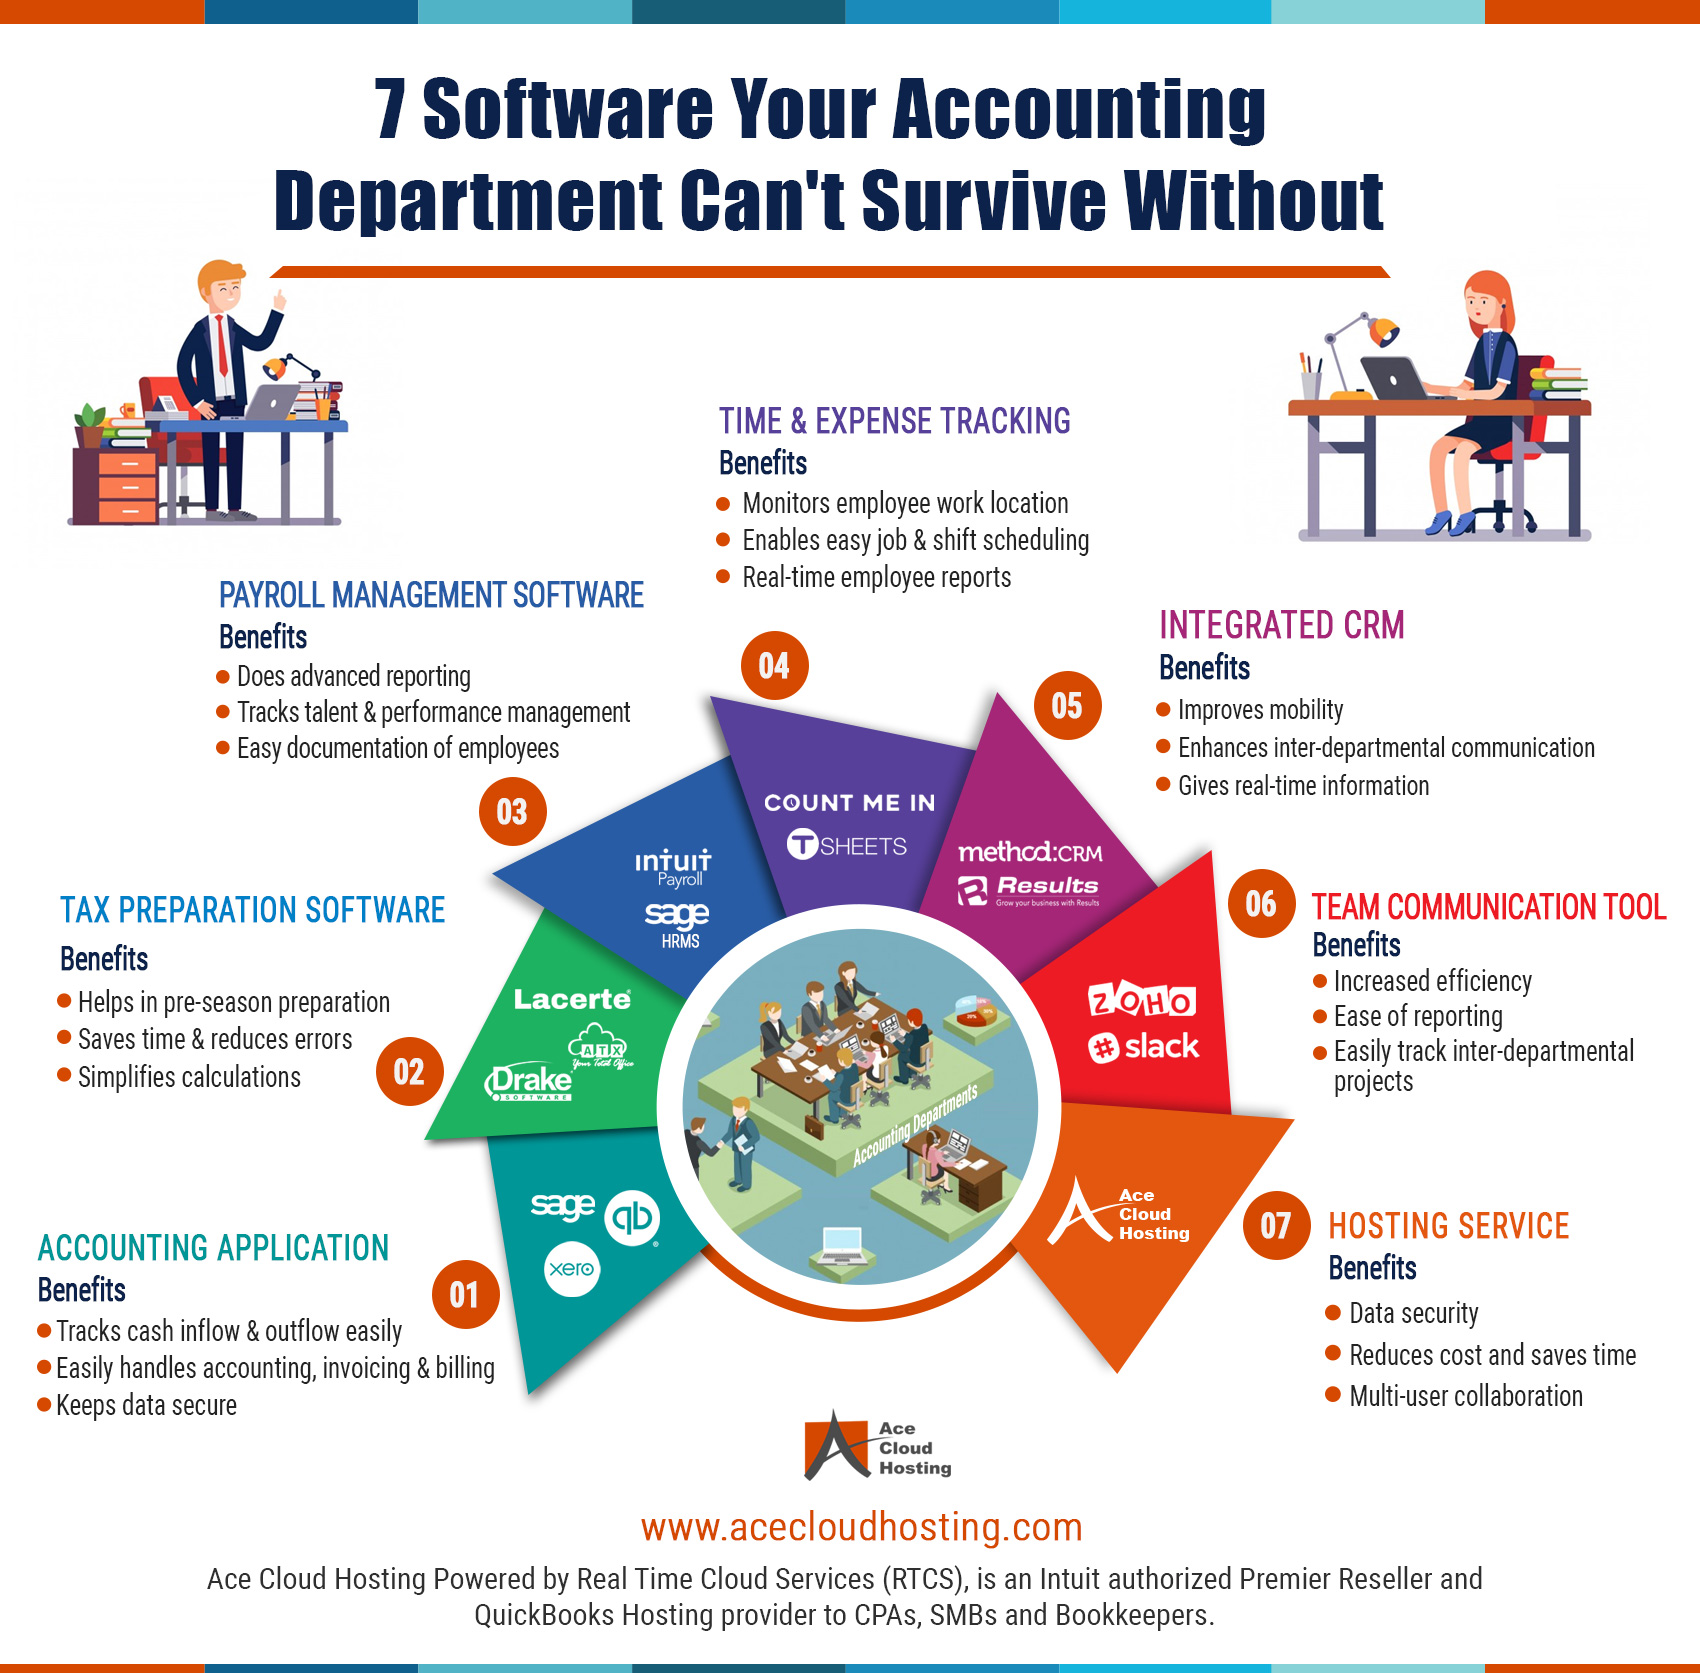 7-Software-Your-Accounting-Department-Cant-Survive-Without